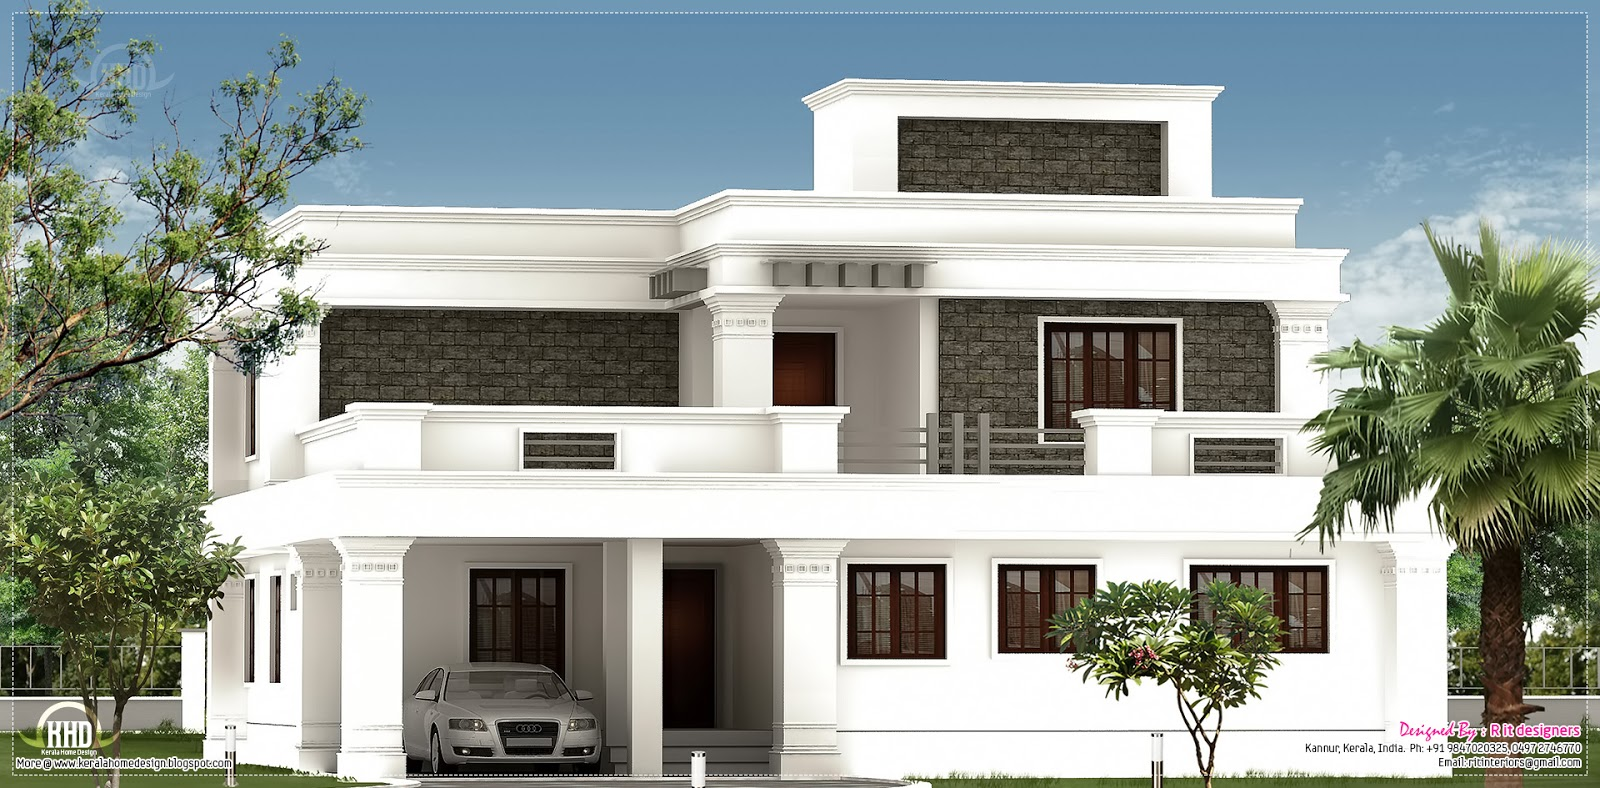 house details ground floor 1505 sq ft first floor 912